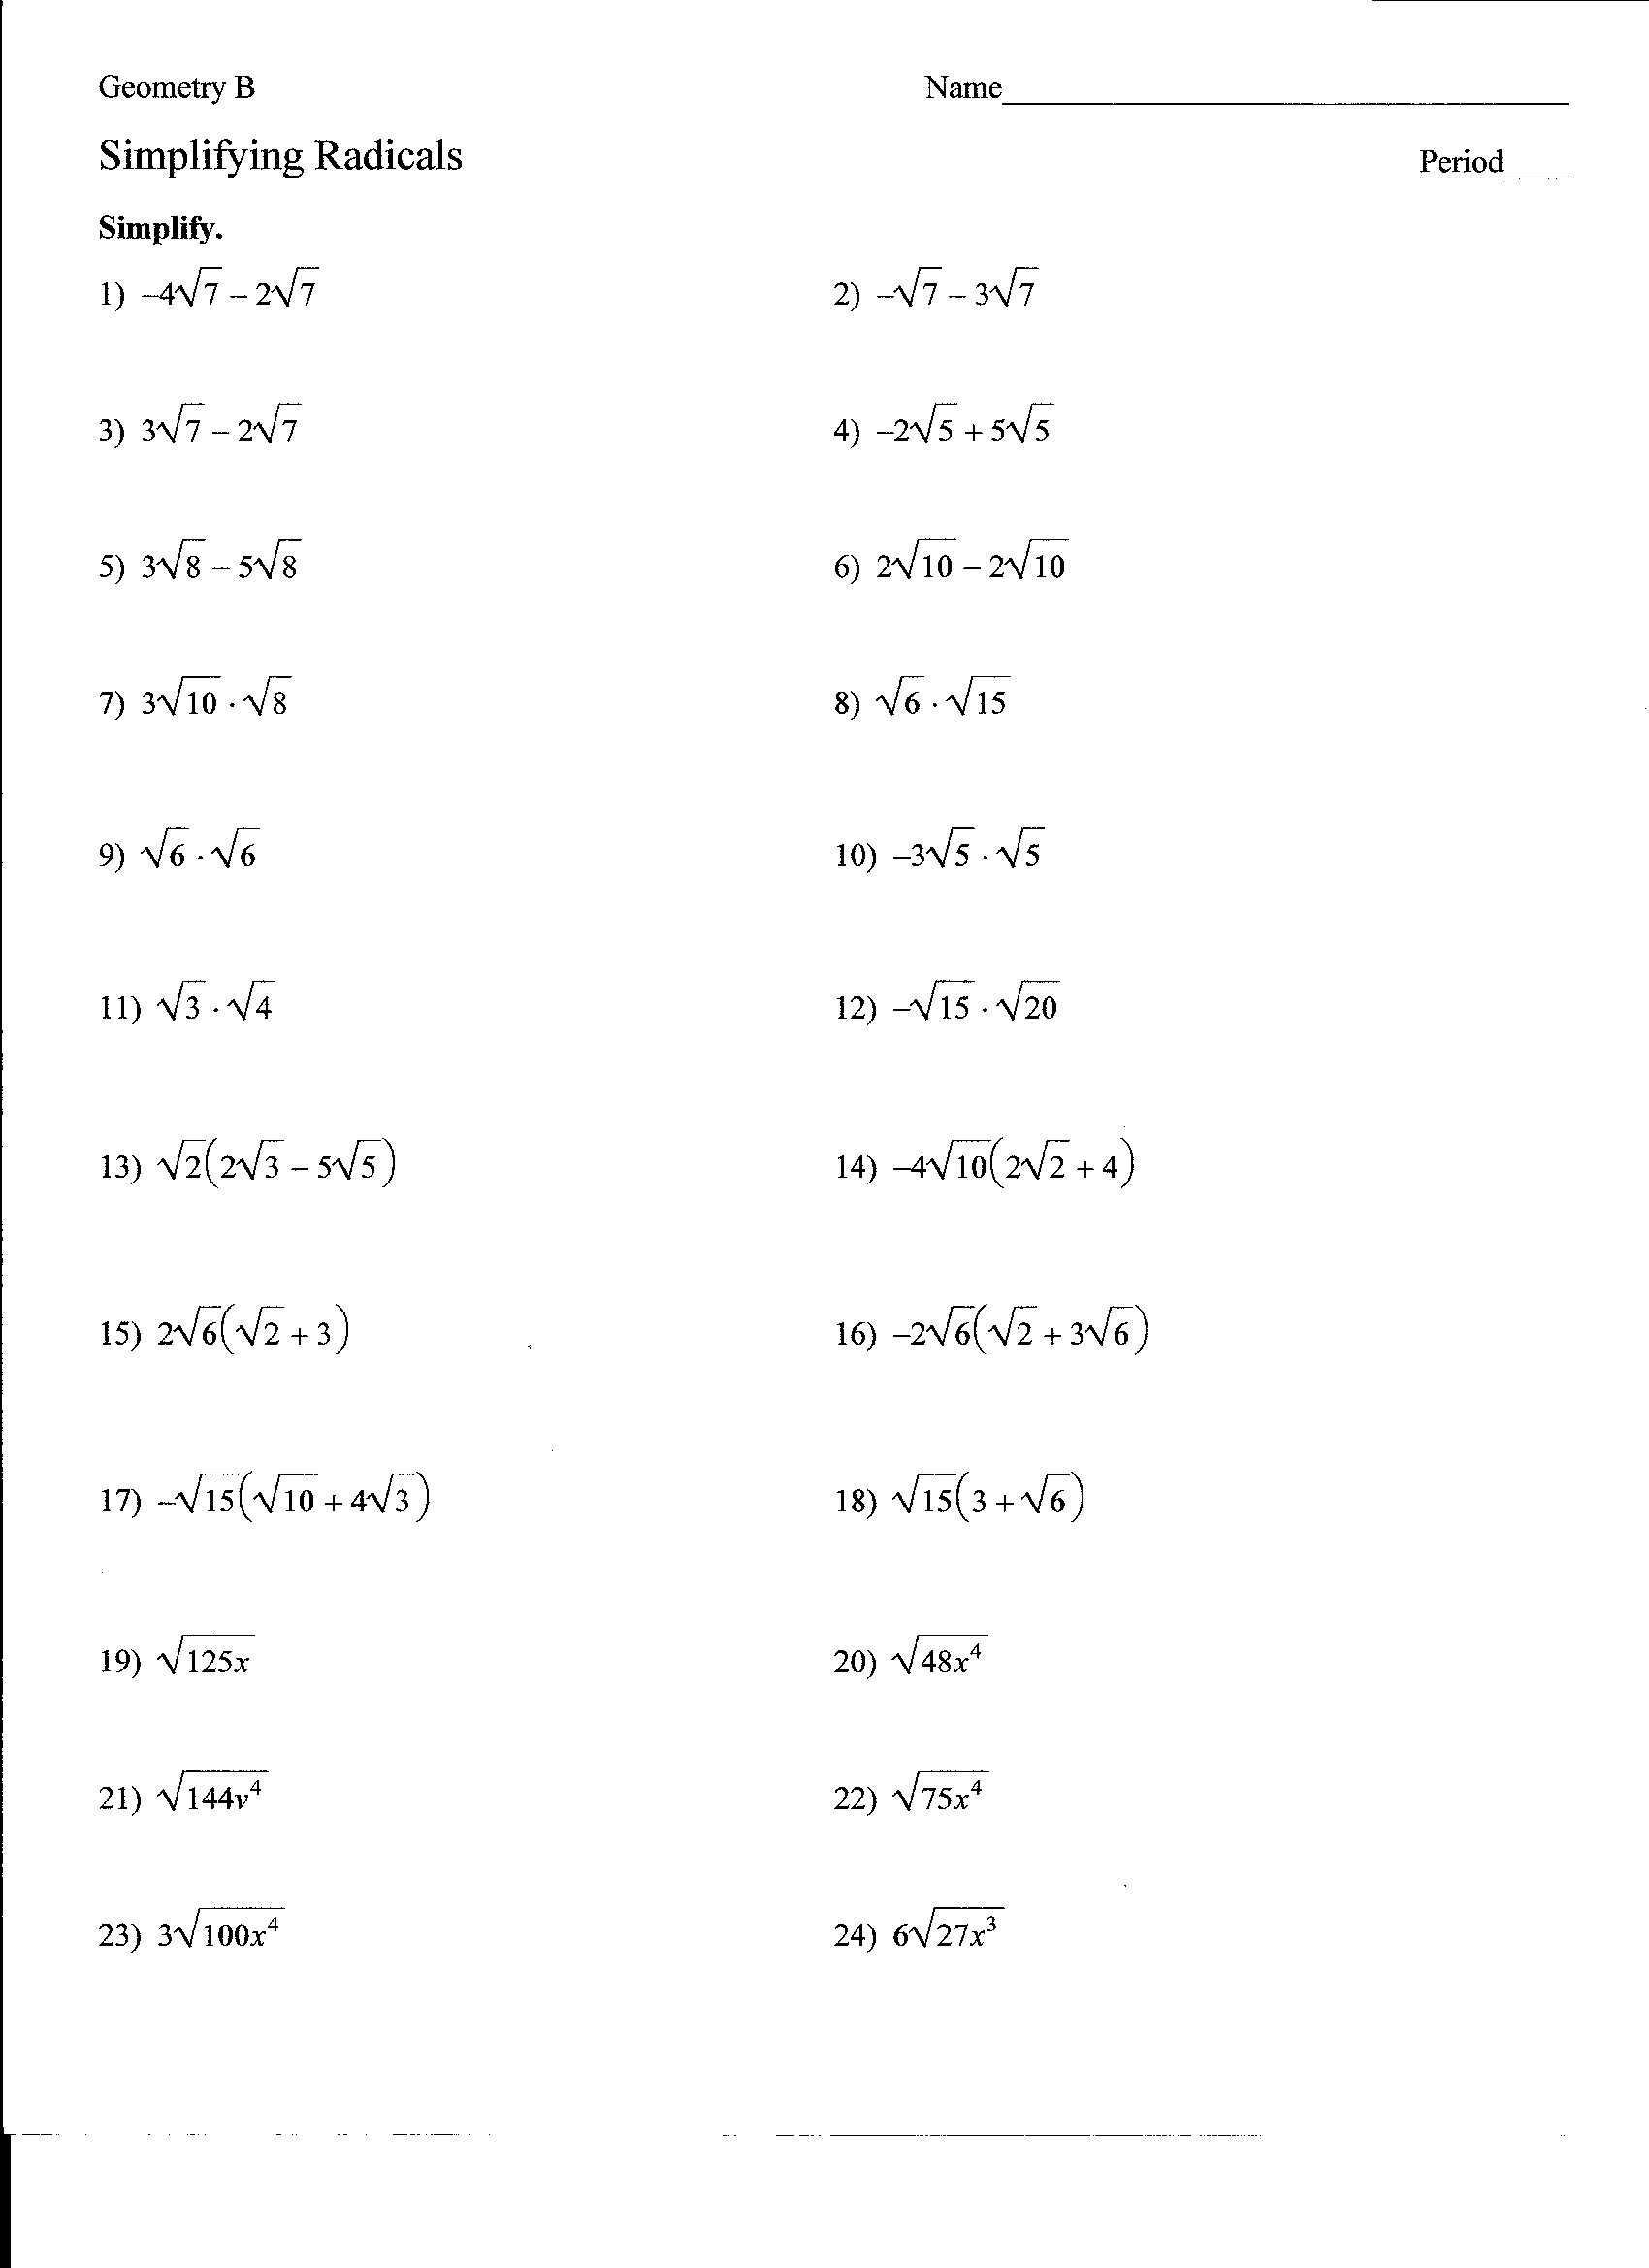 35 Simplifying Radicals Worksheet Algebra 1